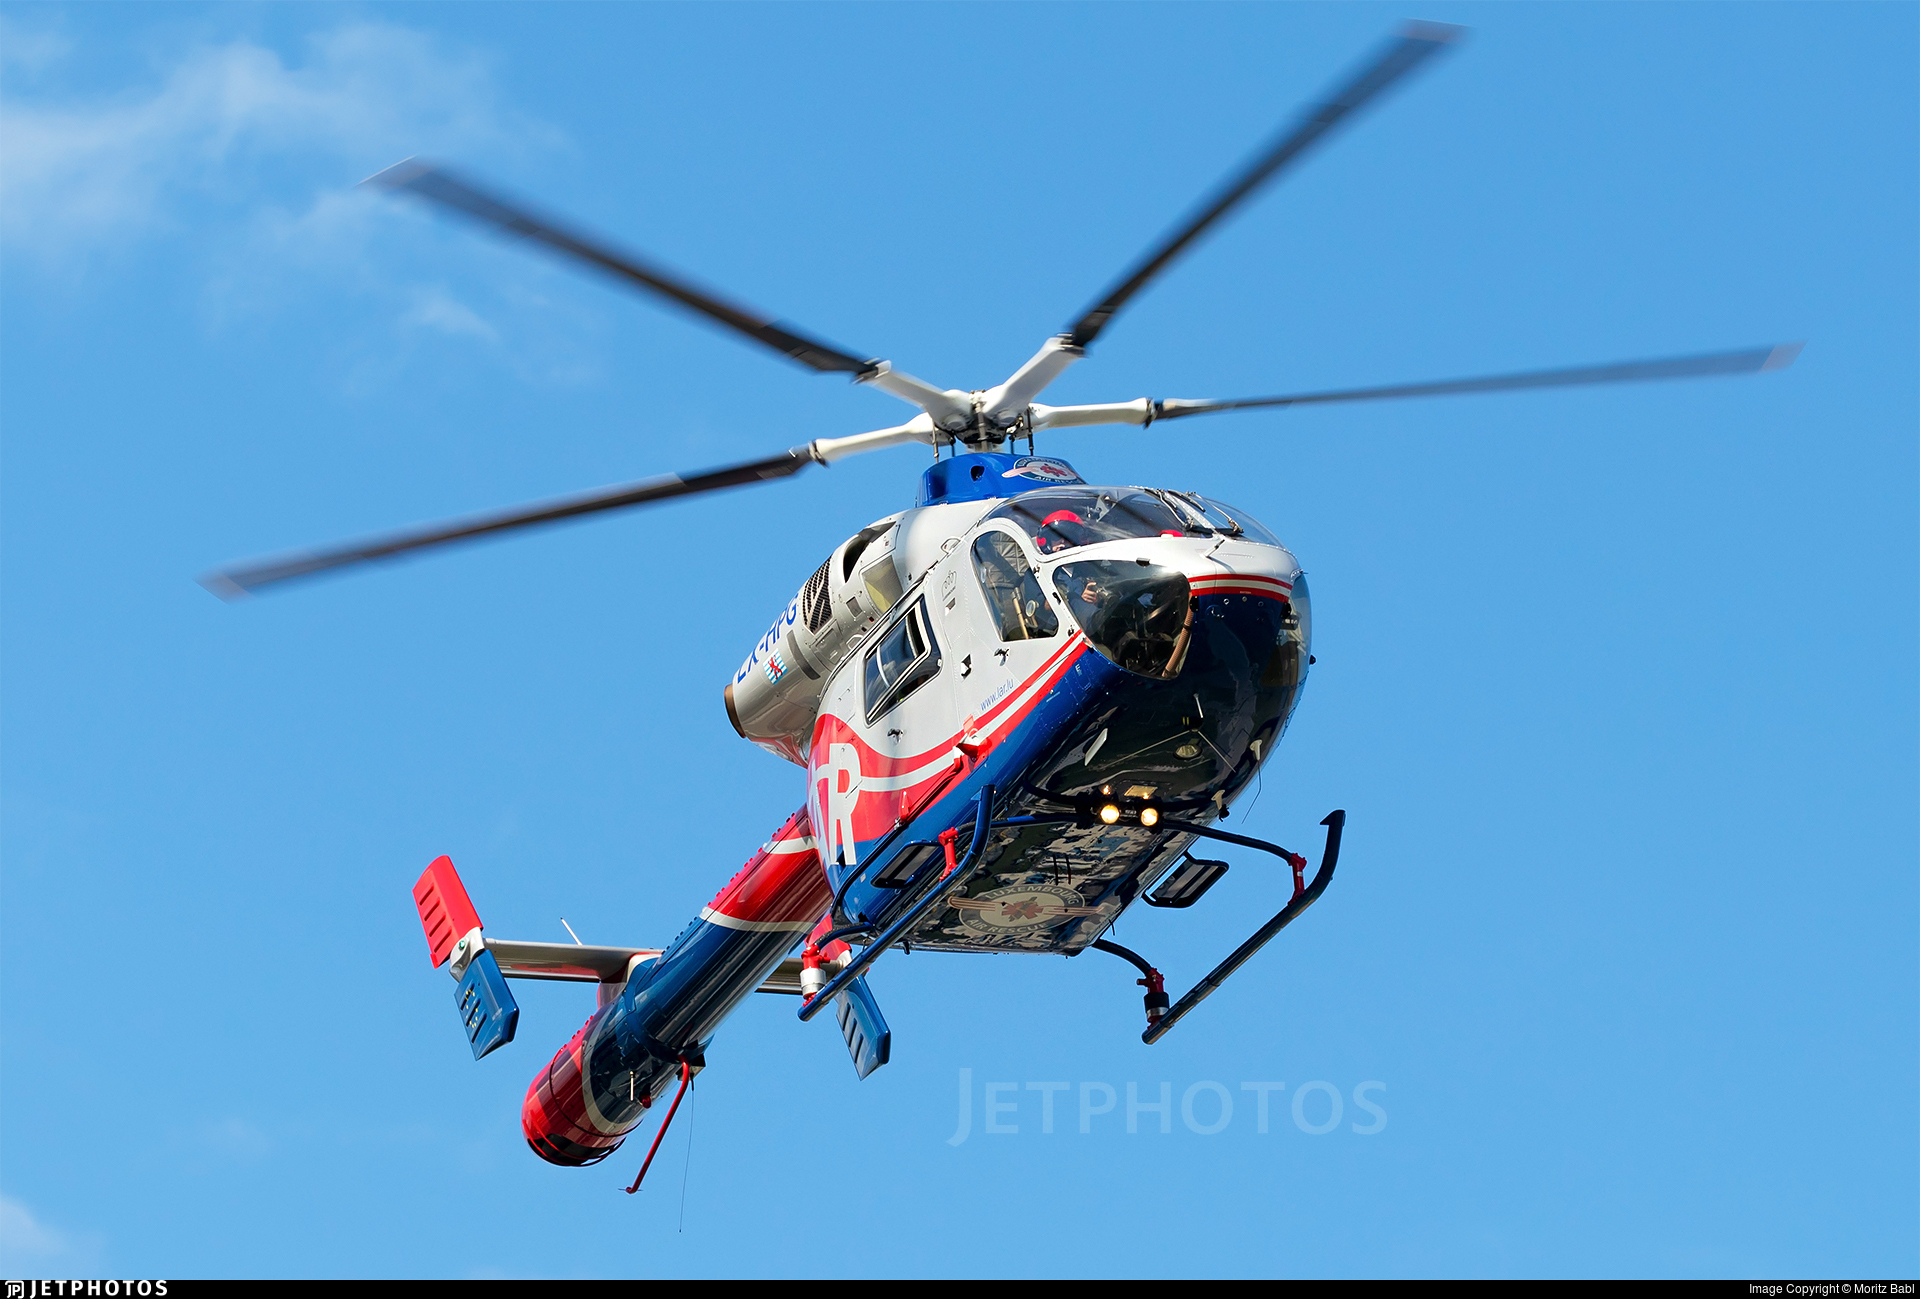 LX-HPG - McDonnell Douglas MD-902 Explorer II - Luxembourg Air Rescue (LAR)